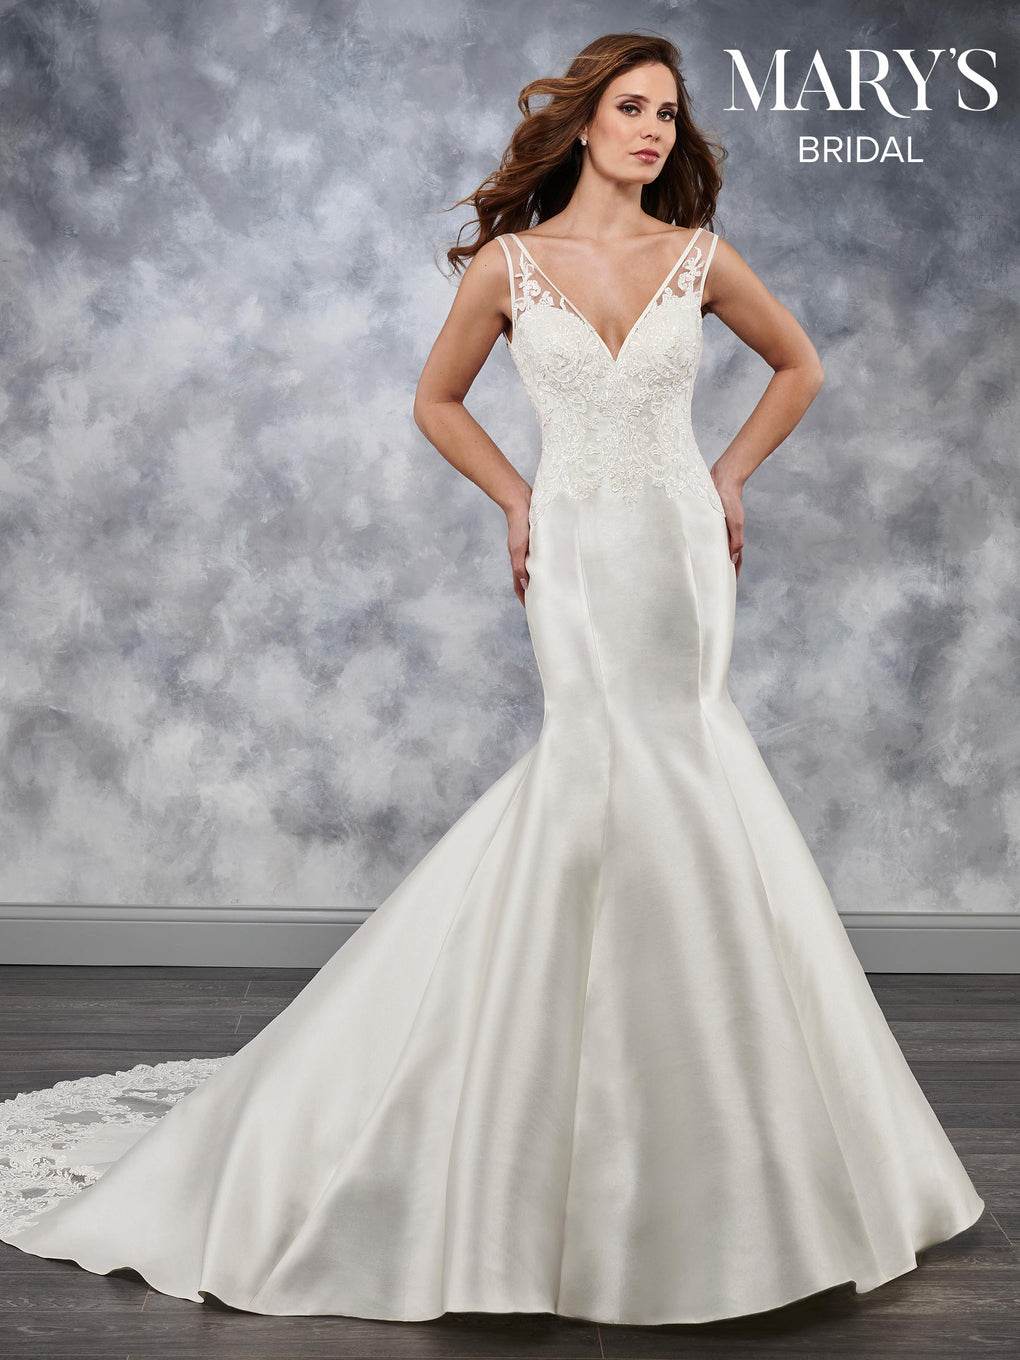 Bridal Wedding Dresses in Ivory or White Color